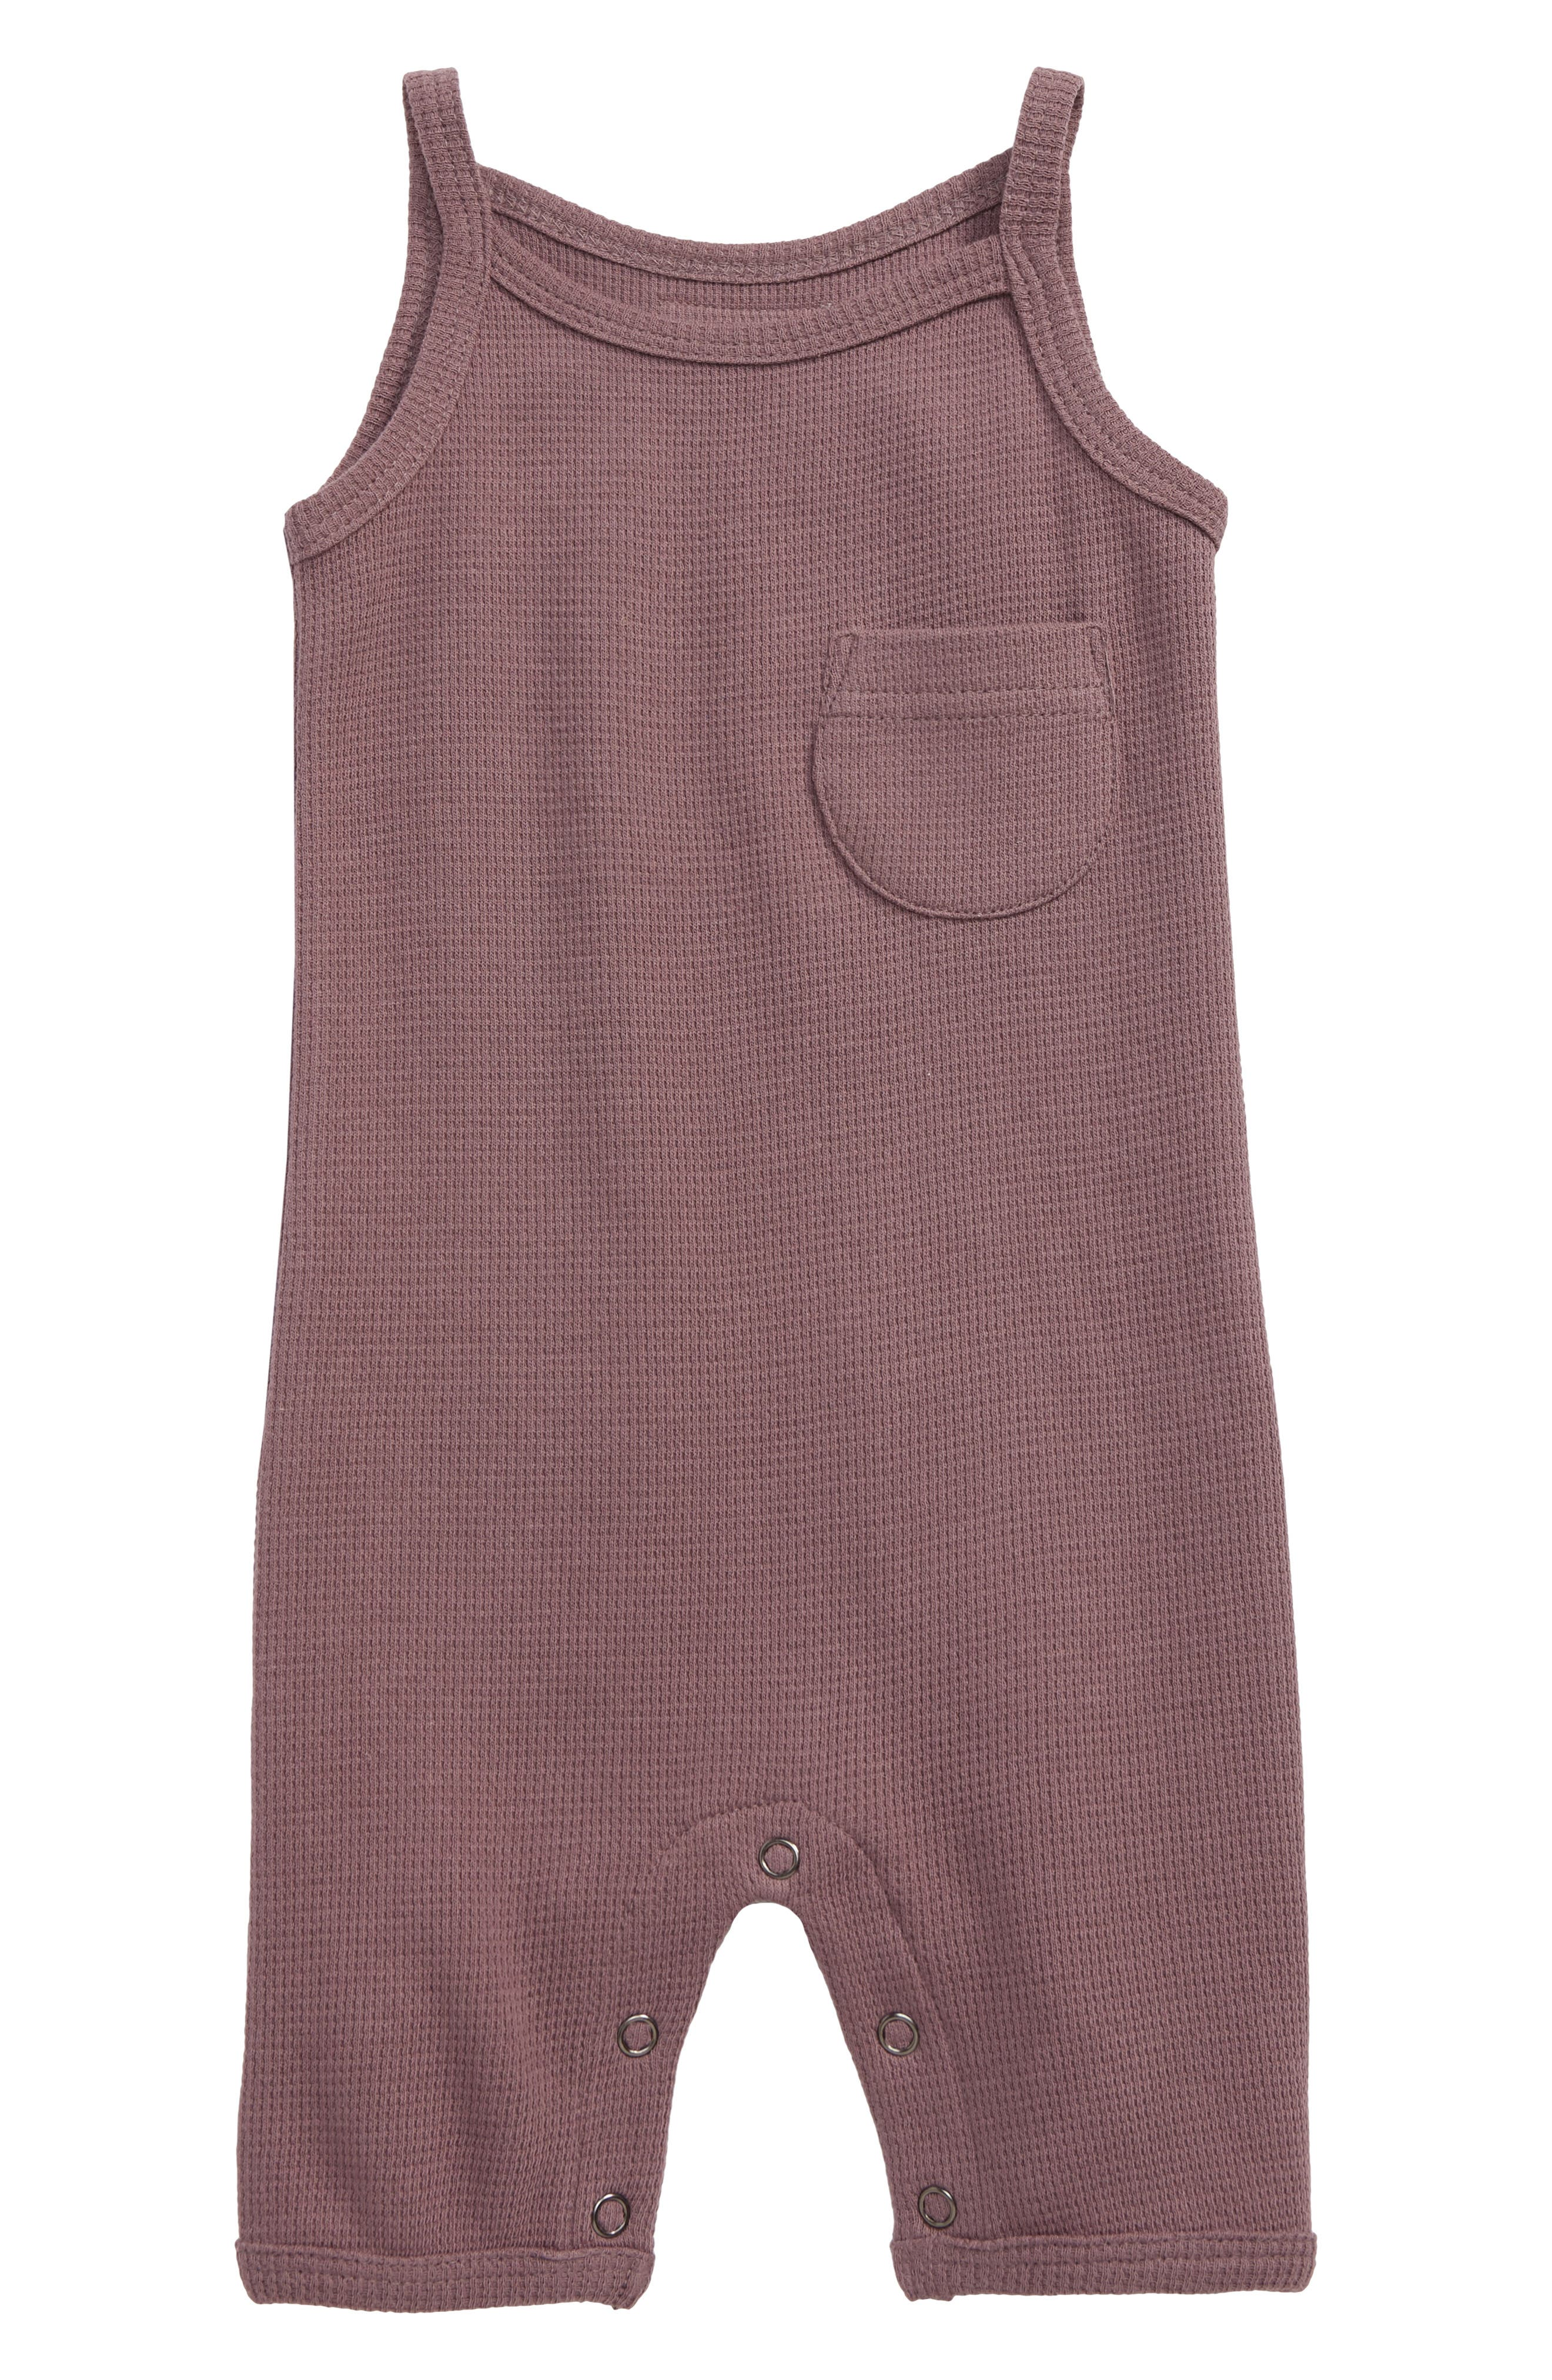 Infant Girls LOvedbaby Thermal Organic Cotton Romper Size 69m (1619 lbs)  Purple